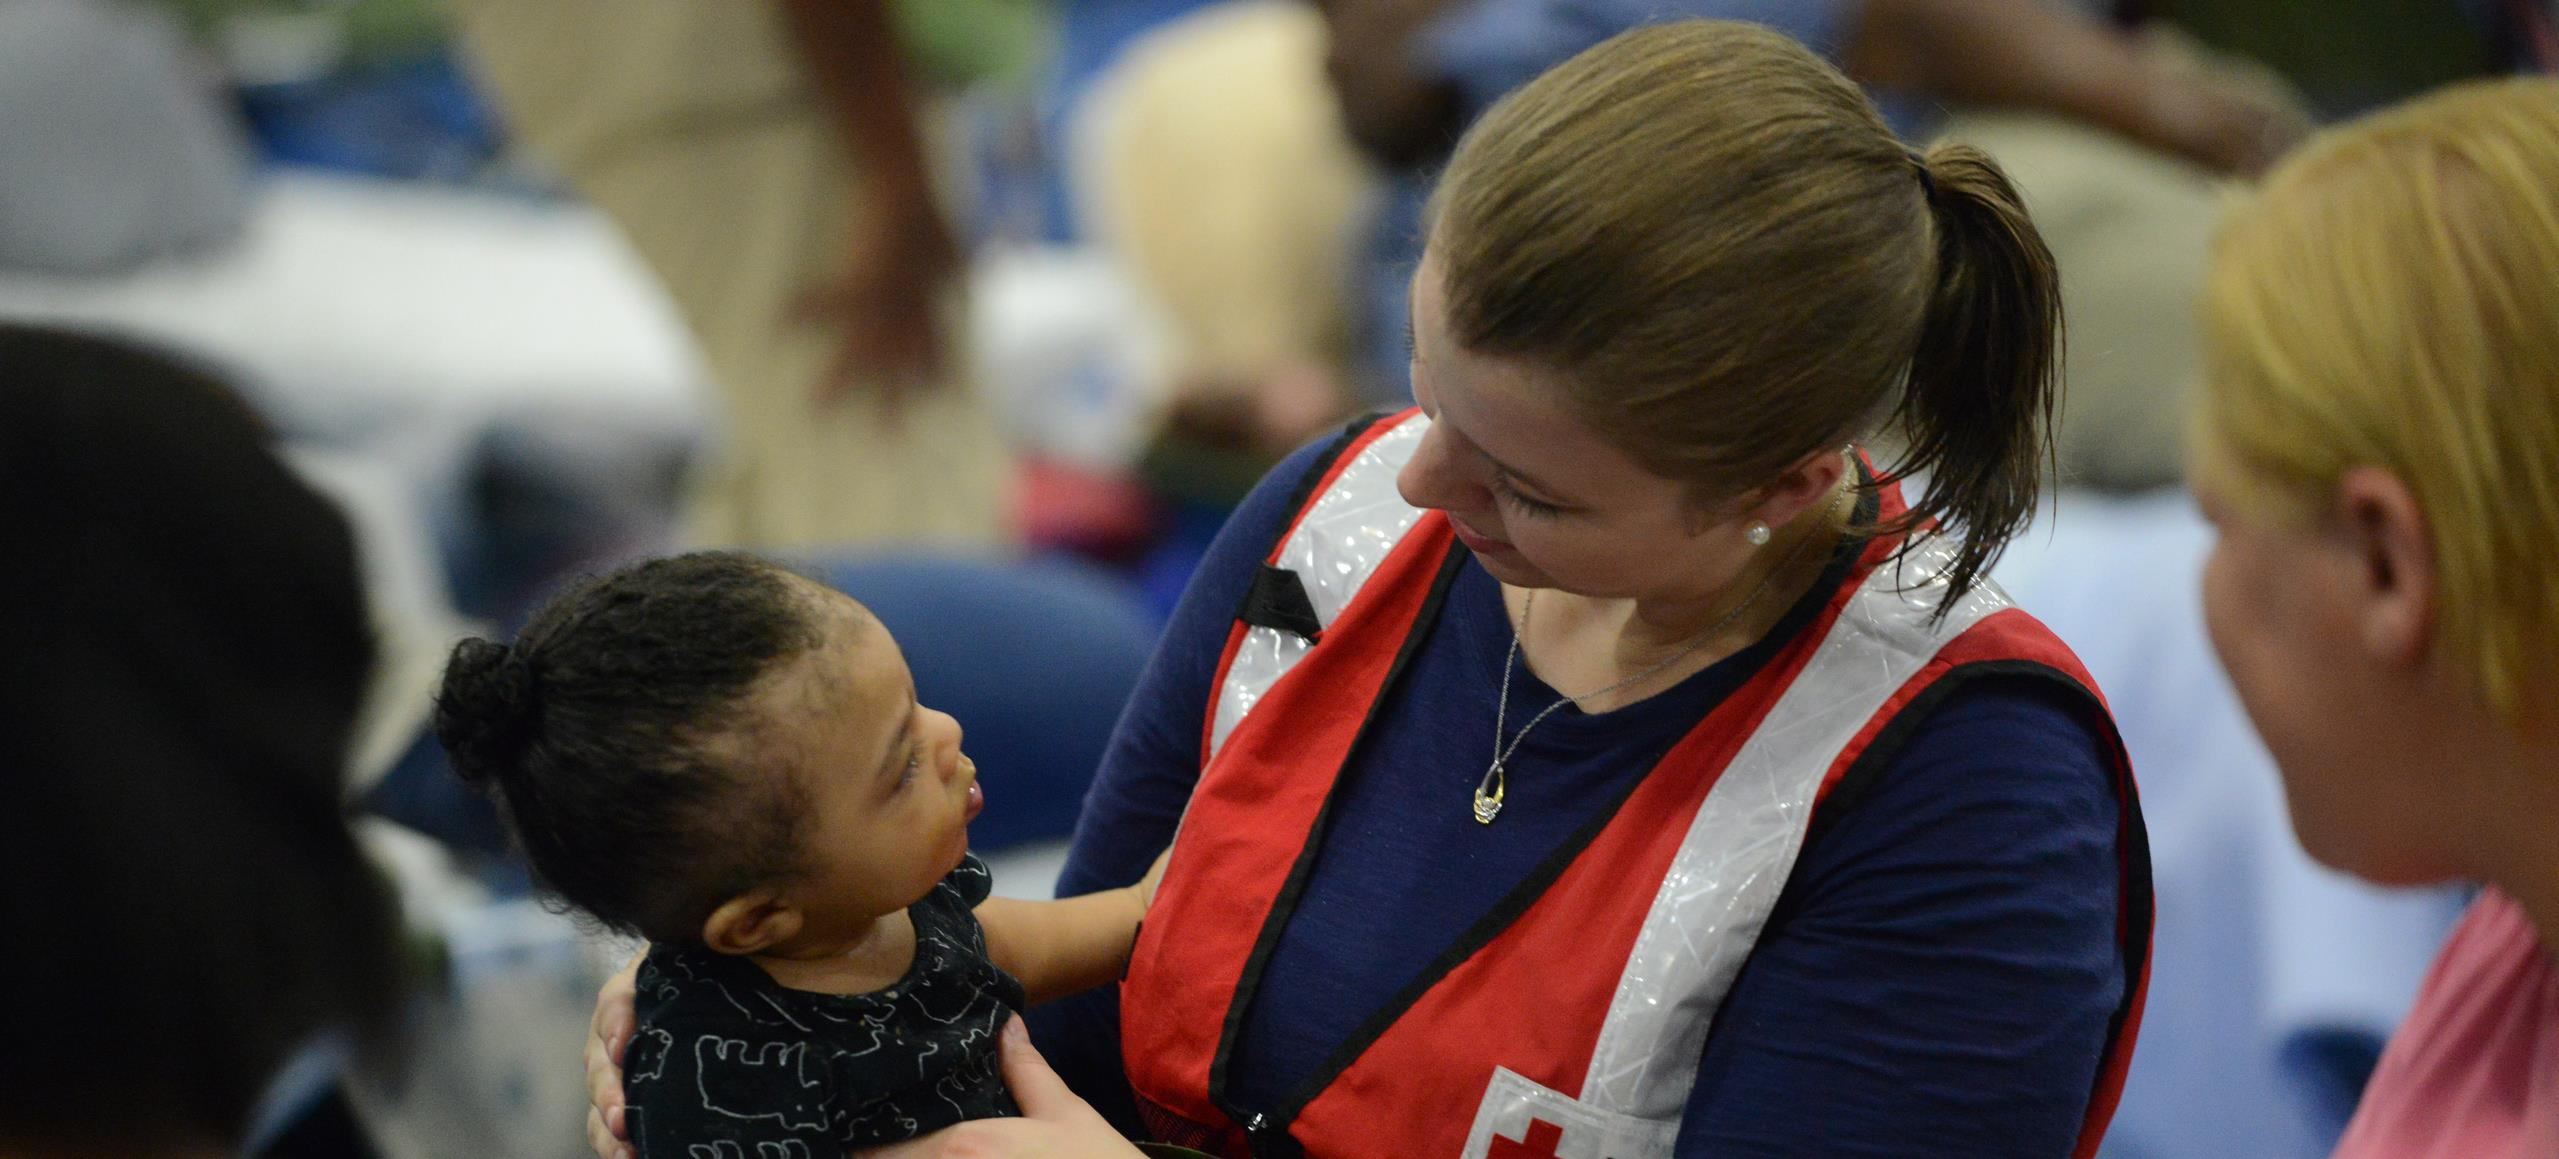 Child being looked after at a red cross shelter in Texas after Hurricane Harvey in 2017.